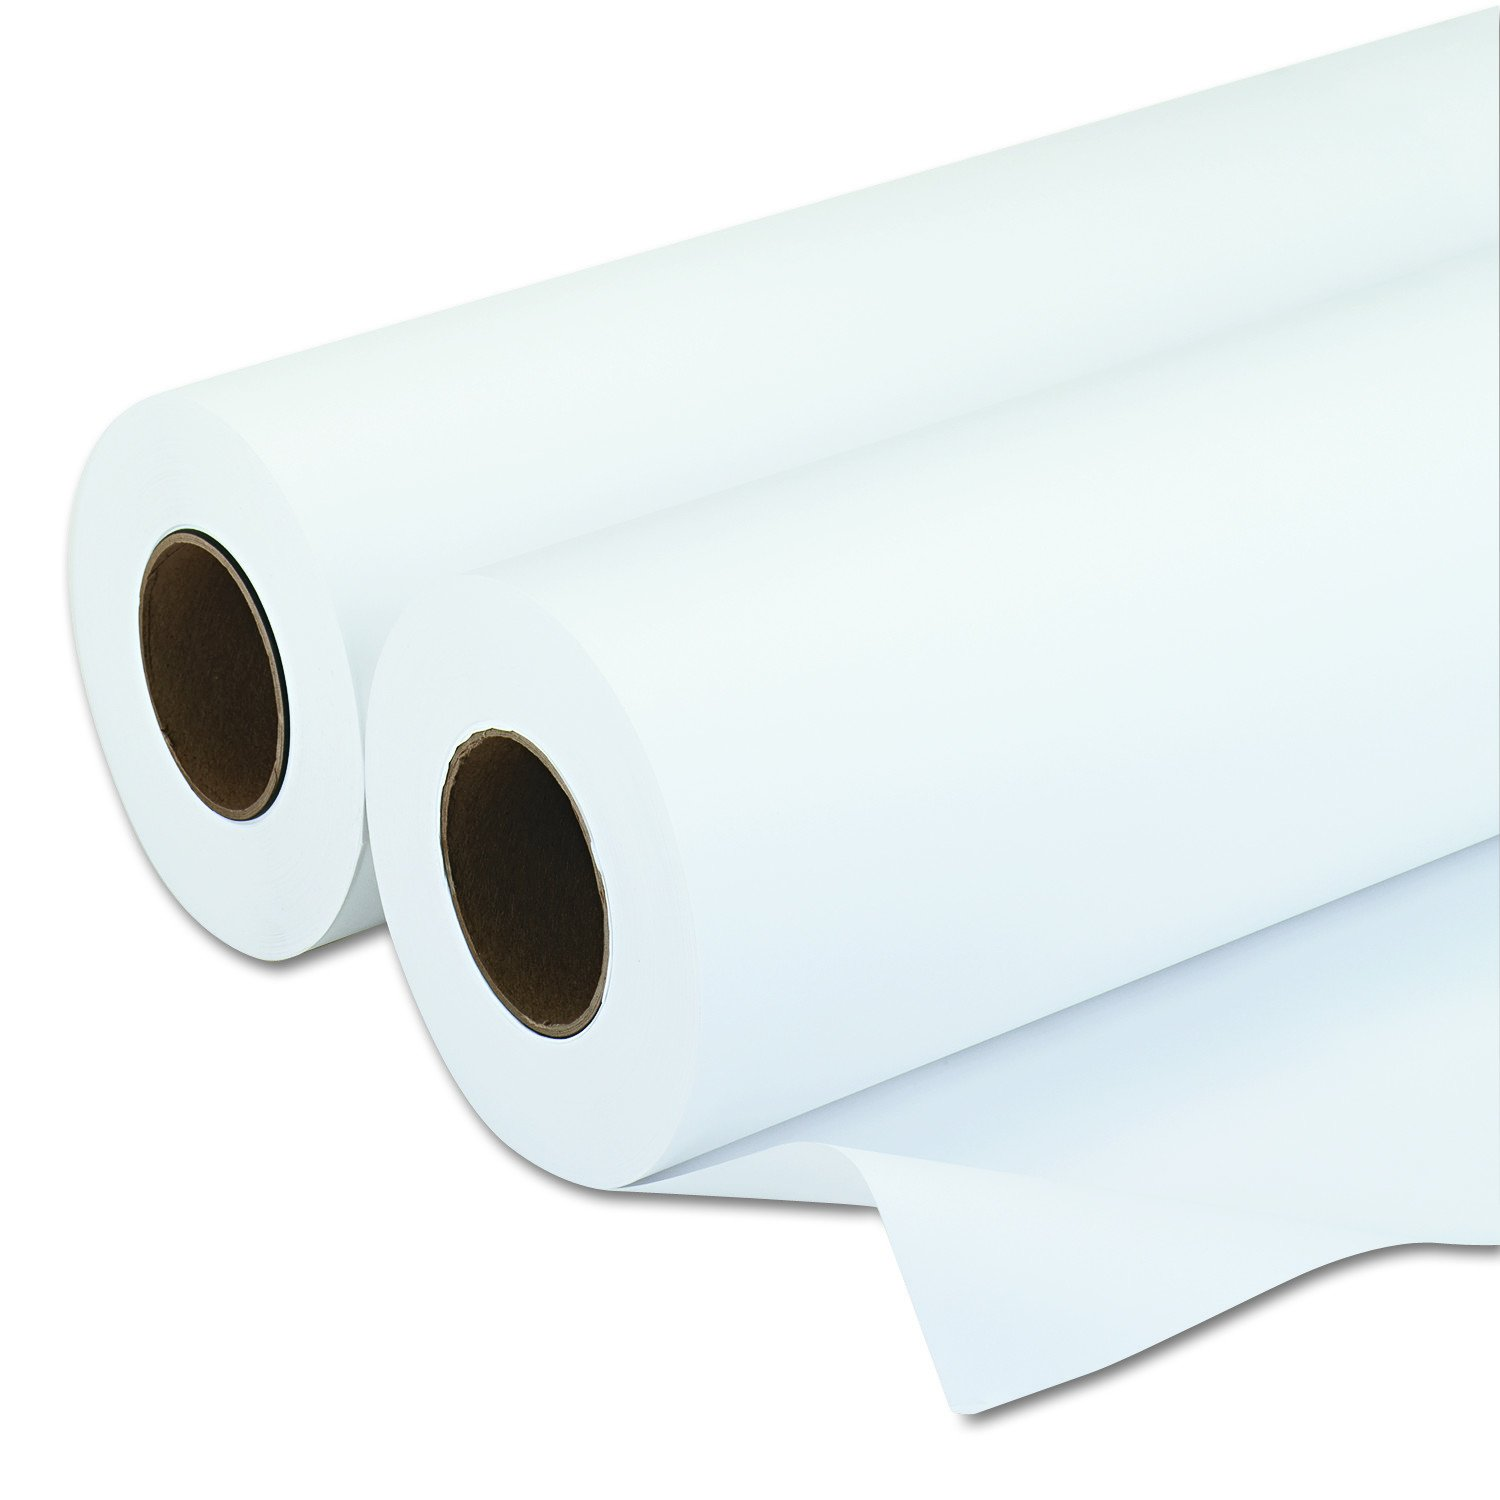 PM Company Perfection Copy 20 Wide Format Bond Engineering/Cad Rolls, 36 Inches X 500 Feet, 3 Inches Core, White, 2 per Carton (09136) by PM Company